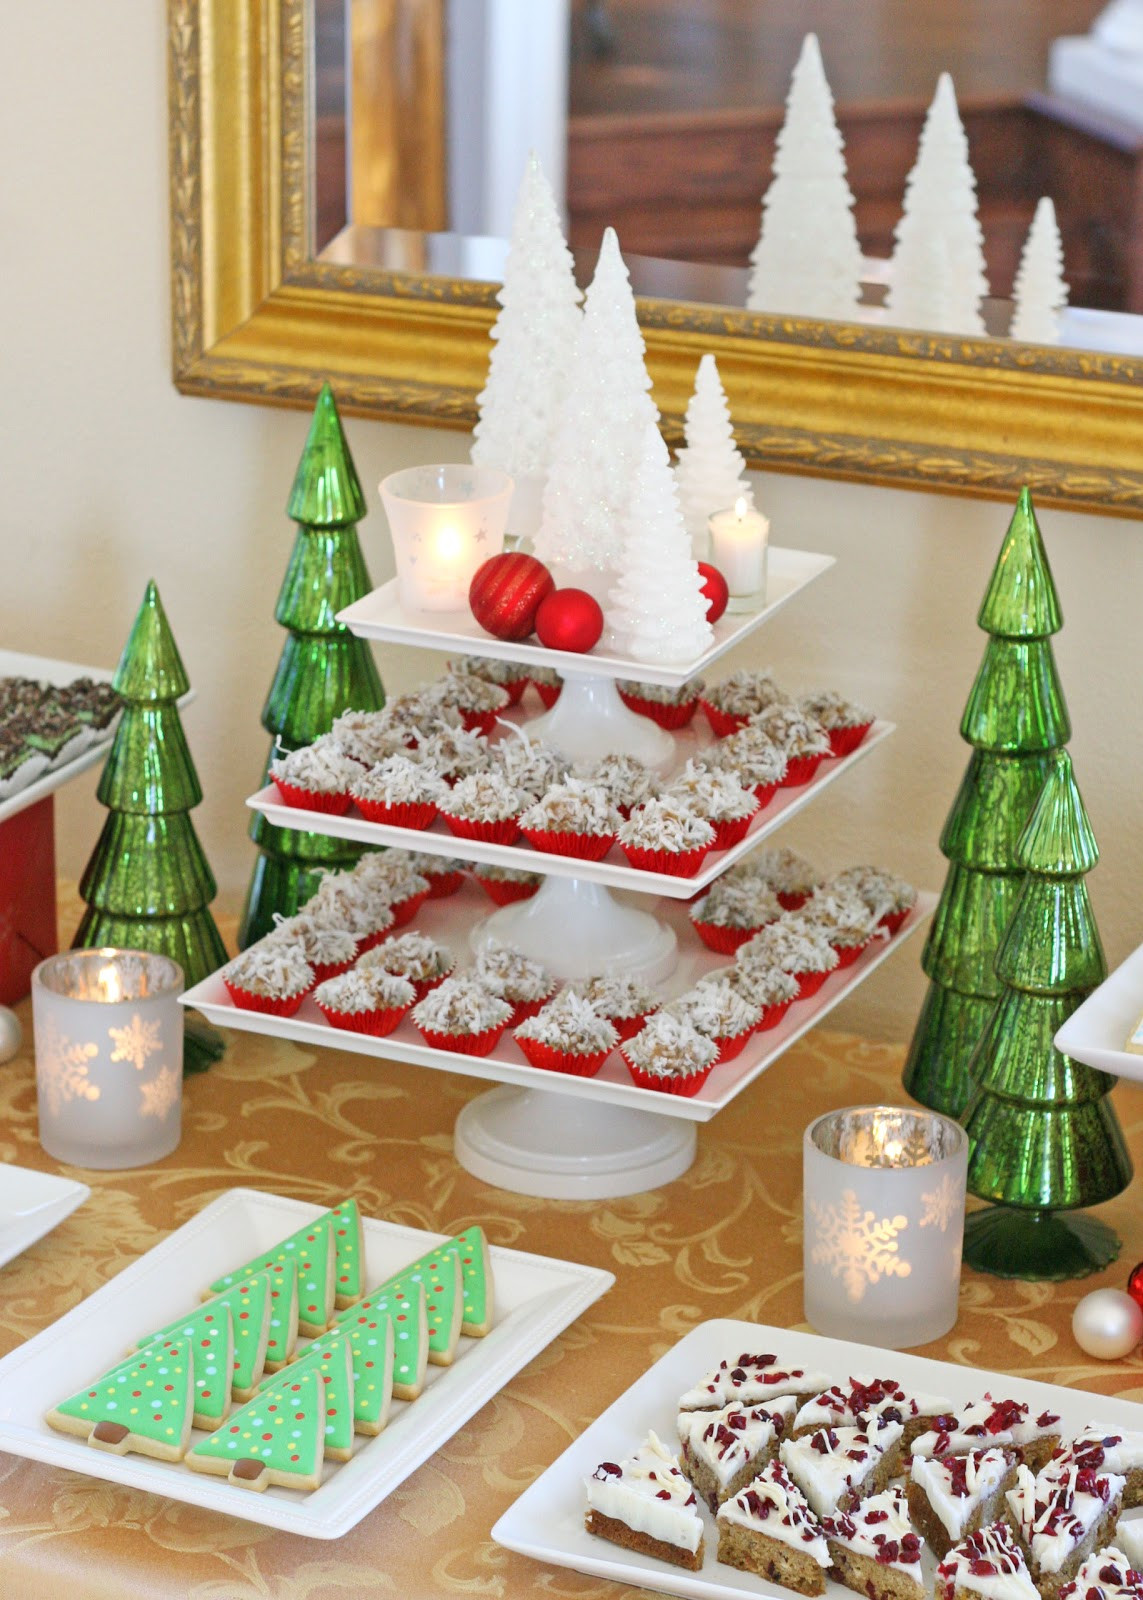 Classic Christmas Desserts  Classic Holiday Dessert Table Glorious Treats